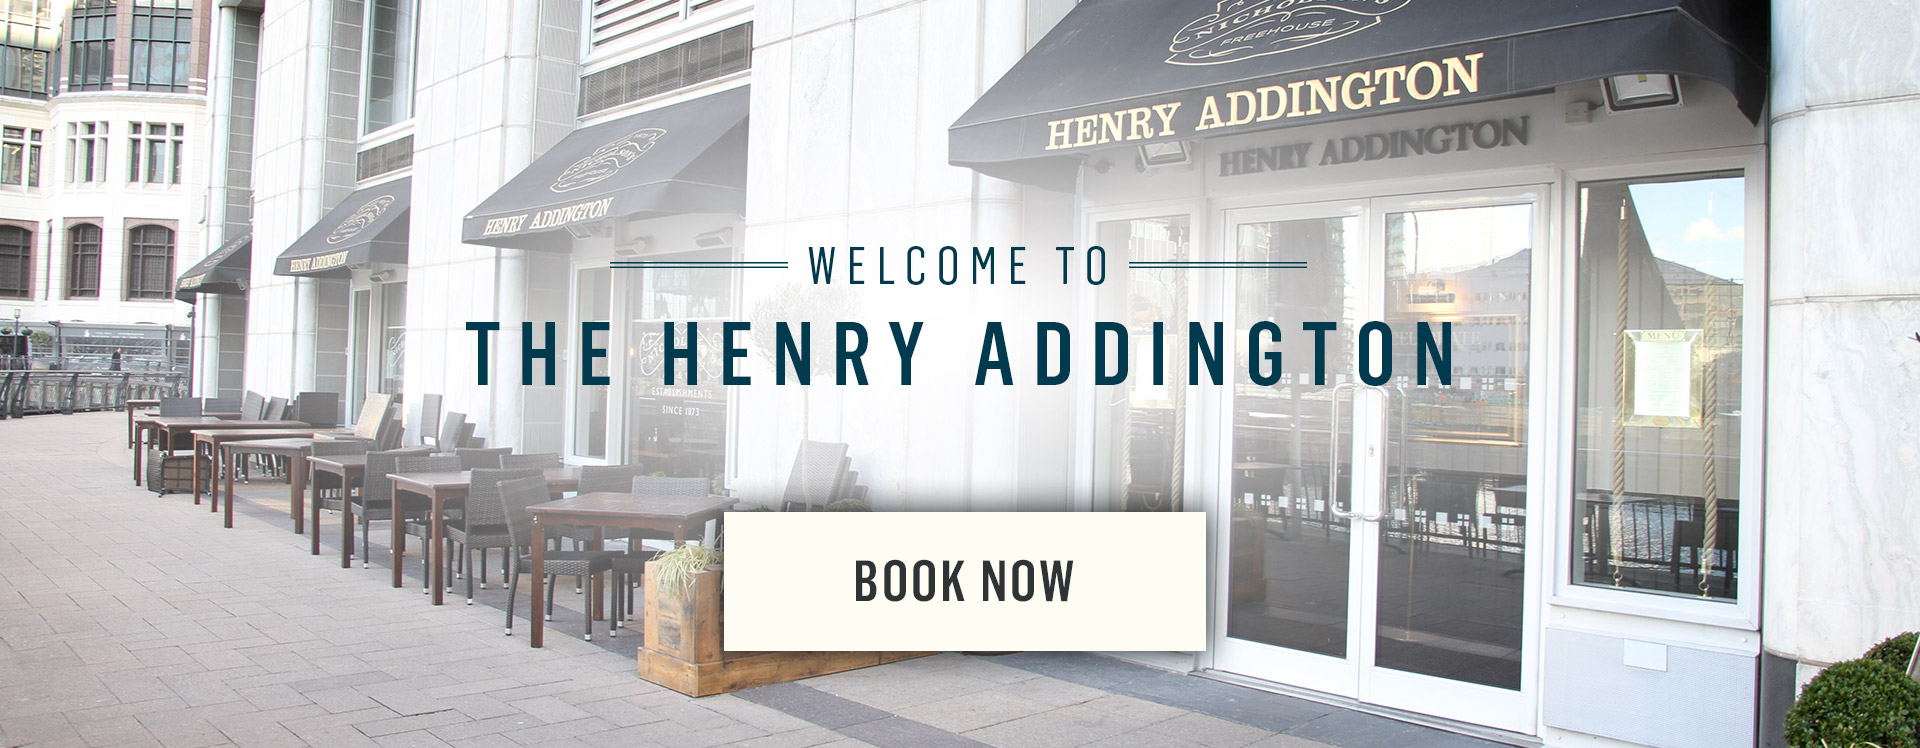 Welcome to The Henry Addington - Book Now